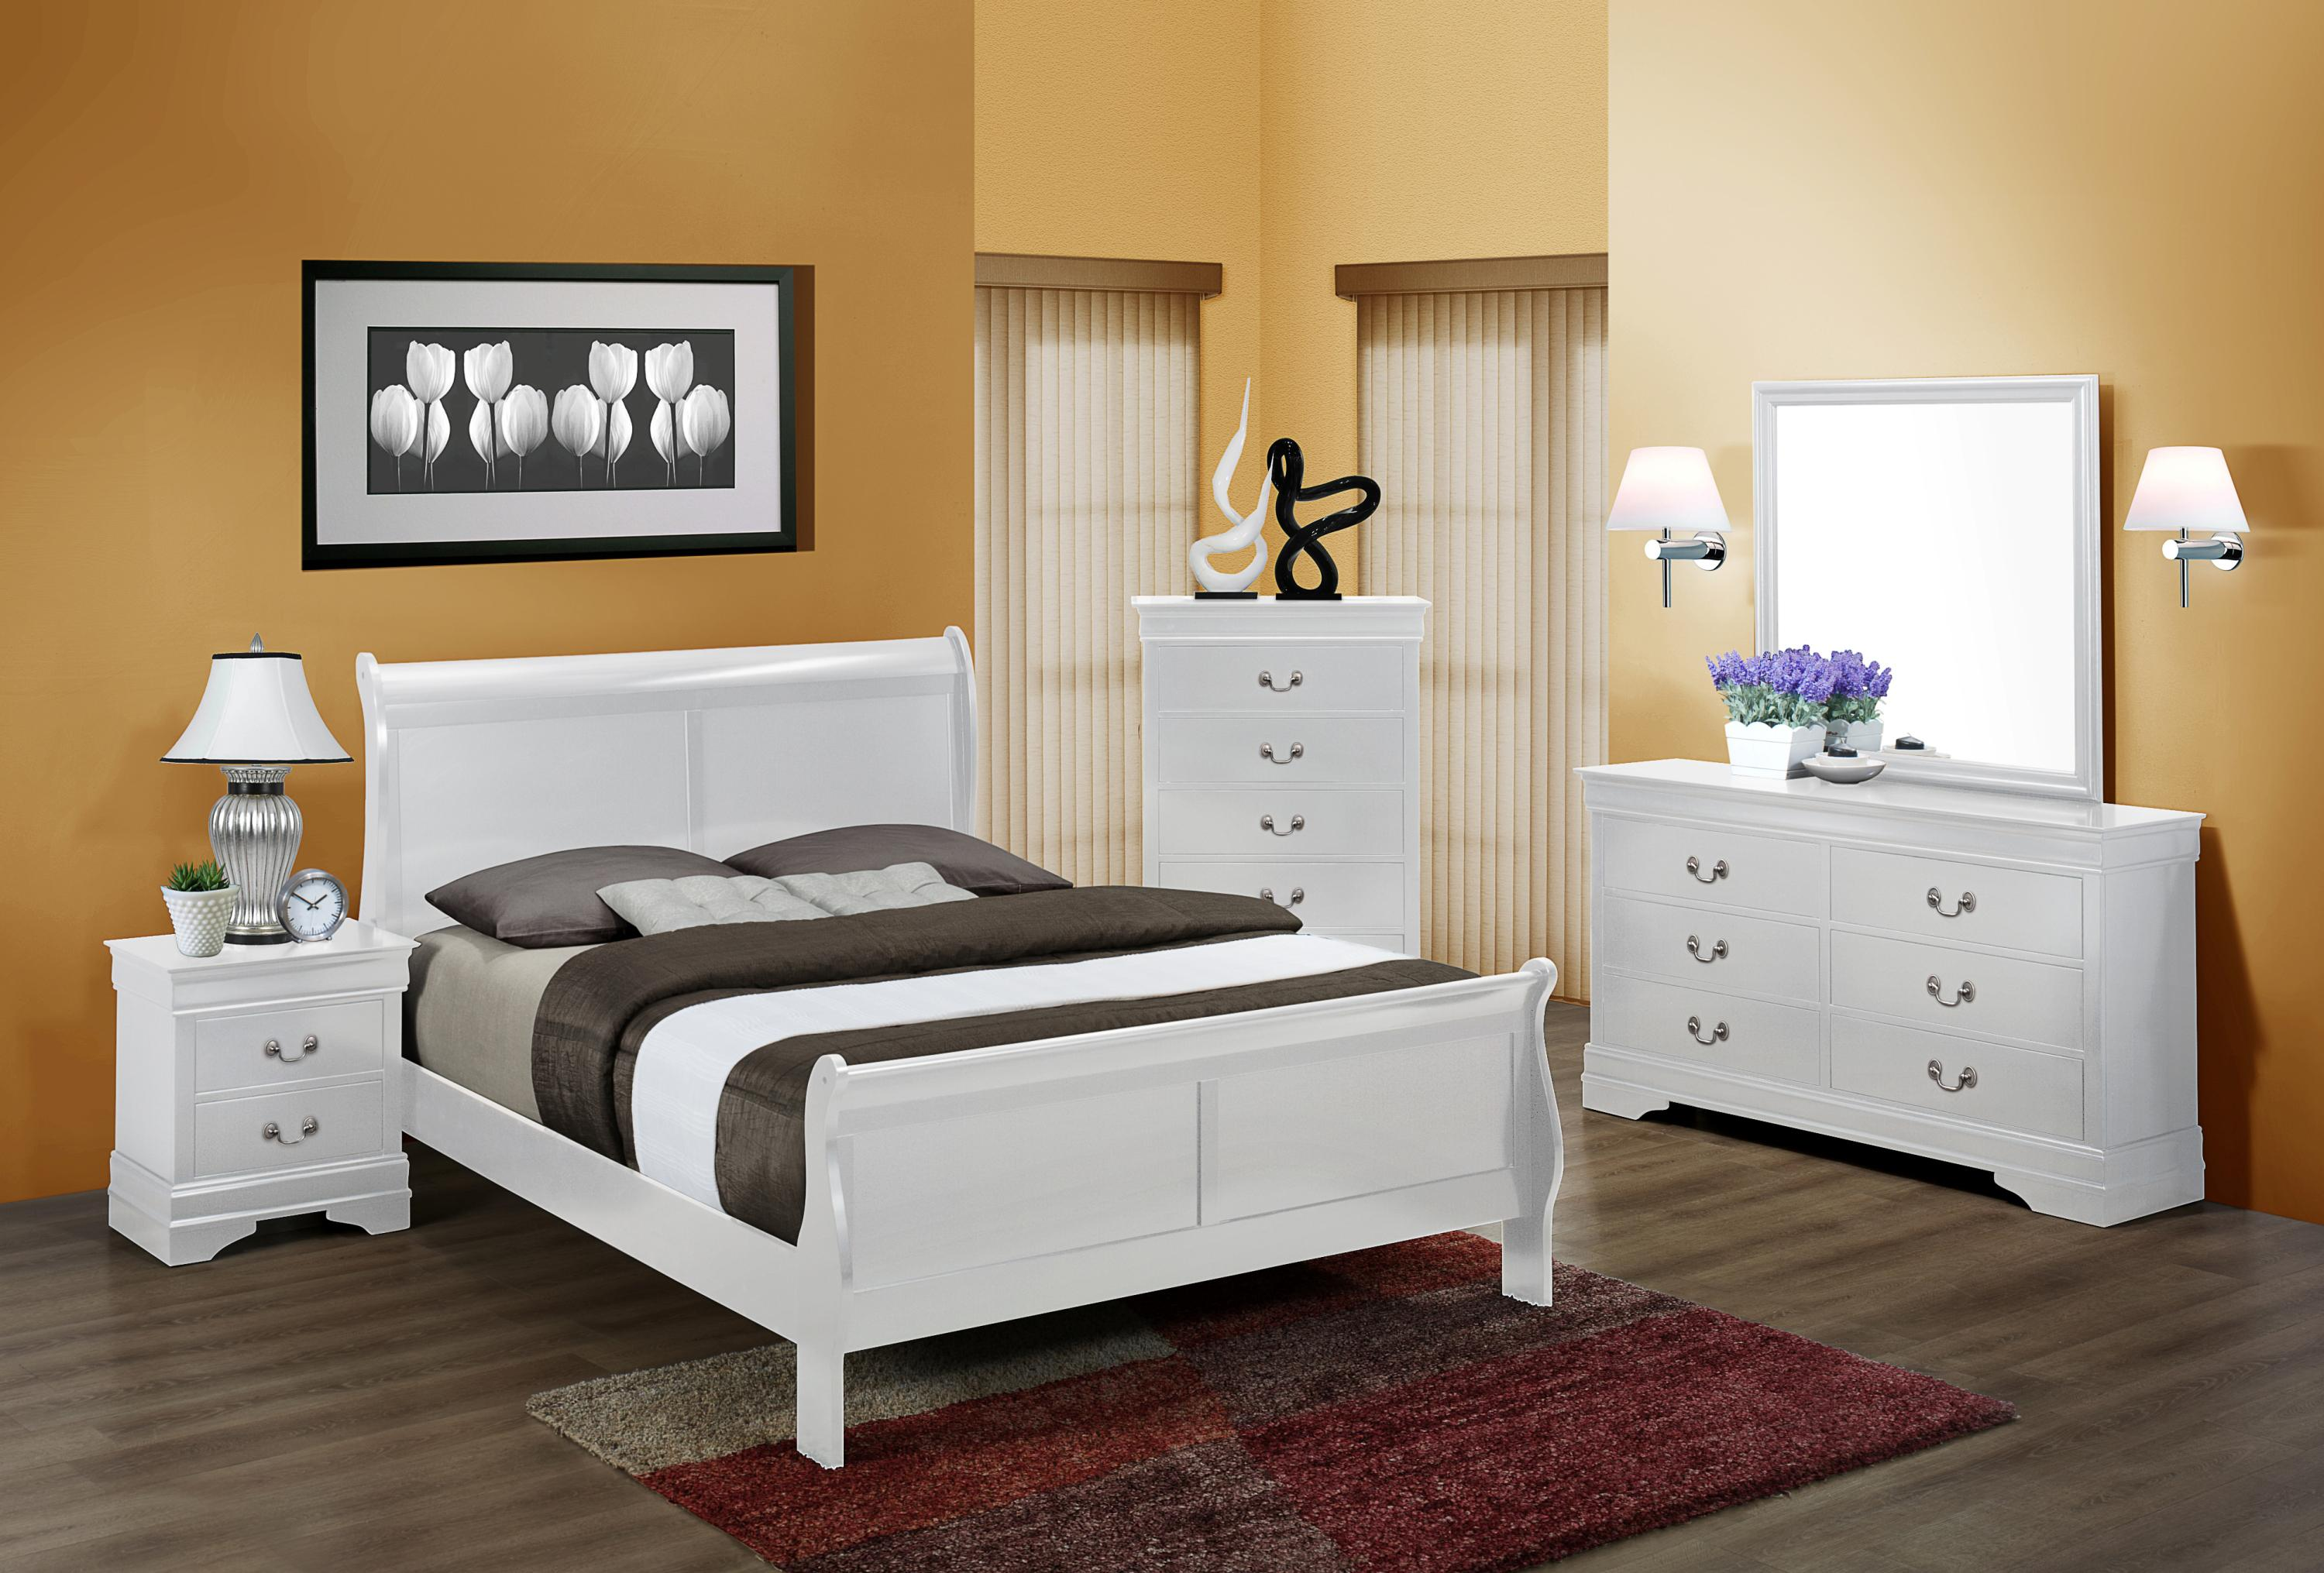 Crown Mark Louis Phillipe Full Bedroom Group - Item Number: B3600 F Bedroom Group1